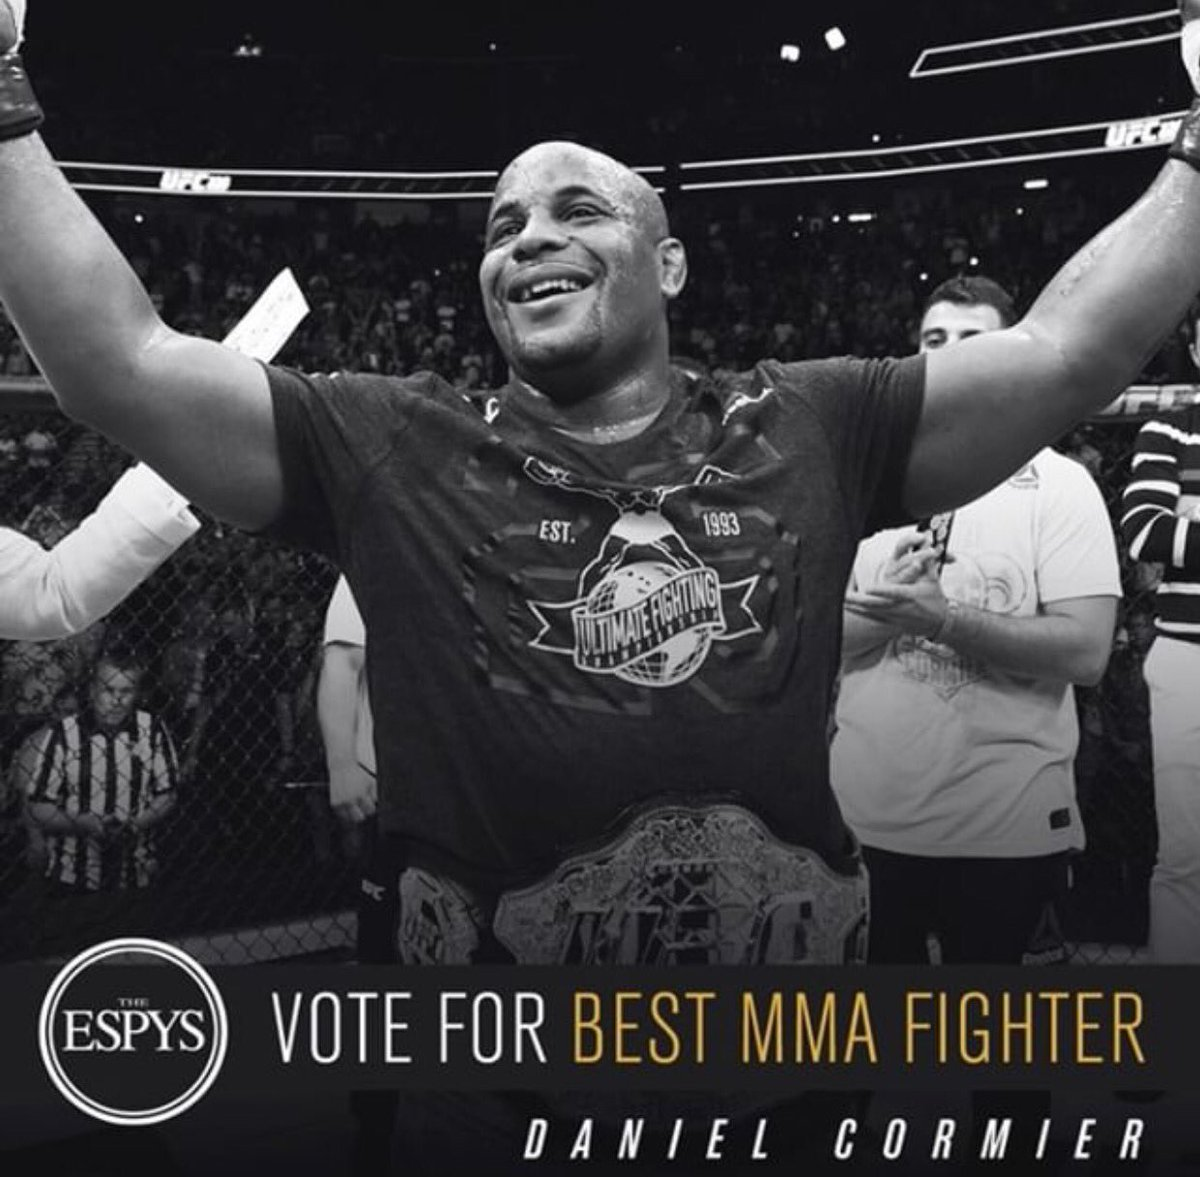 Last day to vote for the Fighter of the year at the espys. Last year was a big one for me. 3 title fights, 3 finishes across 2 weight divisions. I've won Fighter of the year across the board. Let's end it with the big one! Please vote. DC